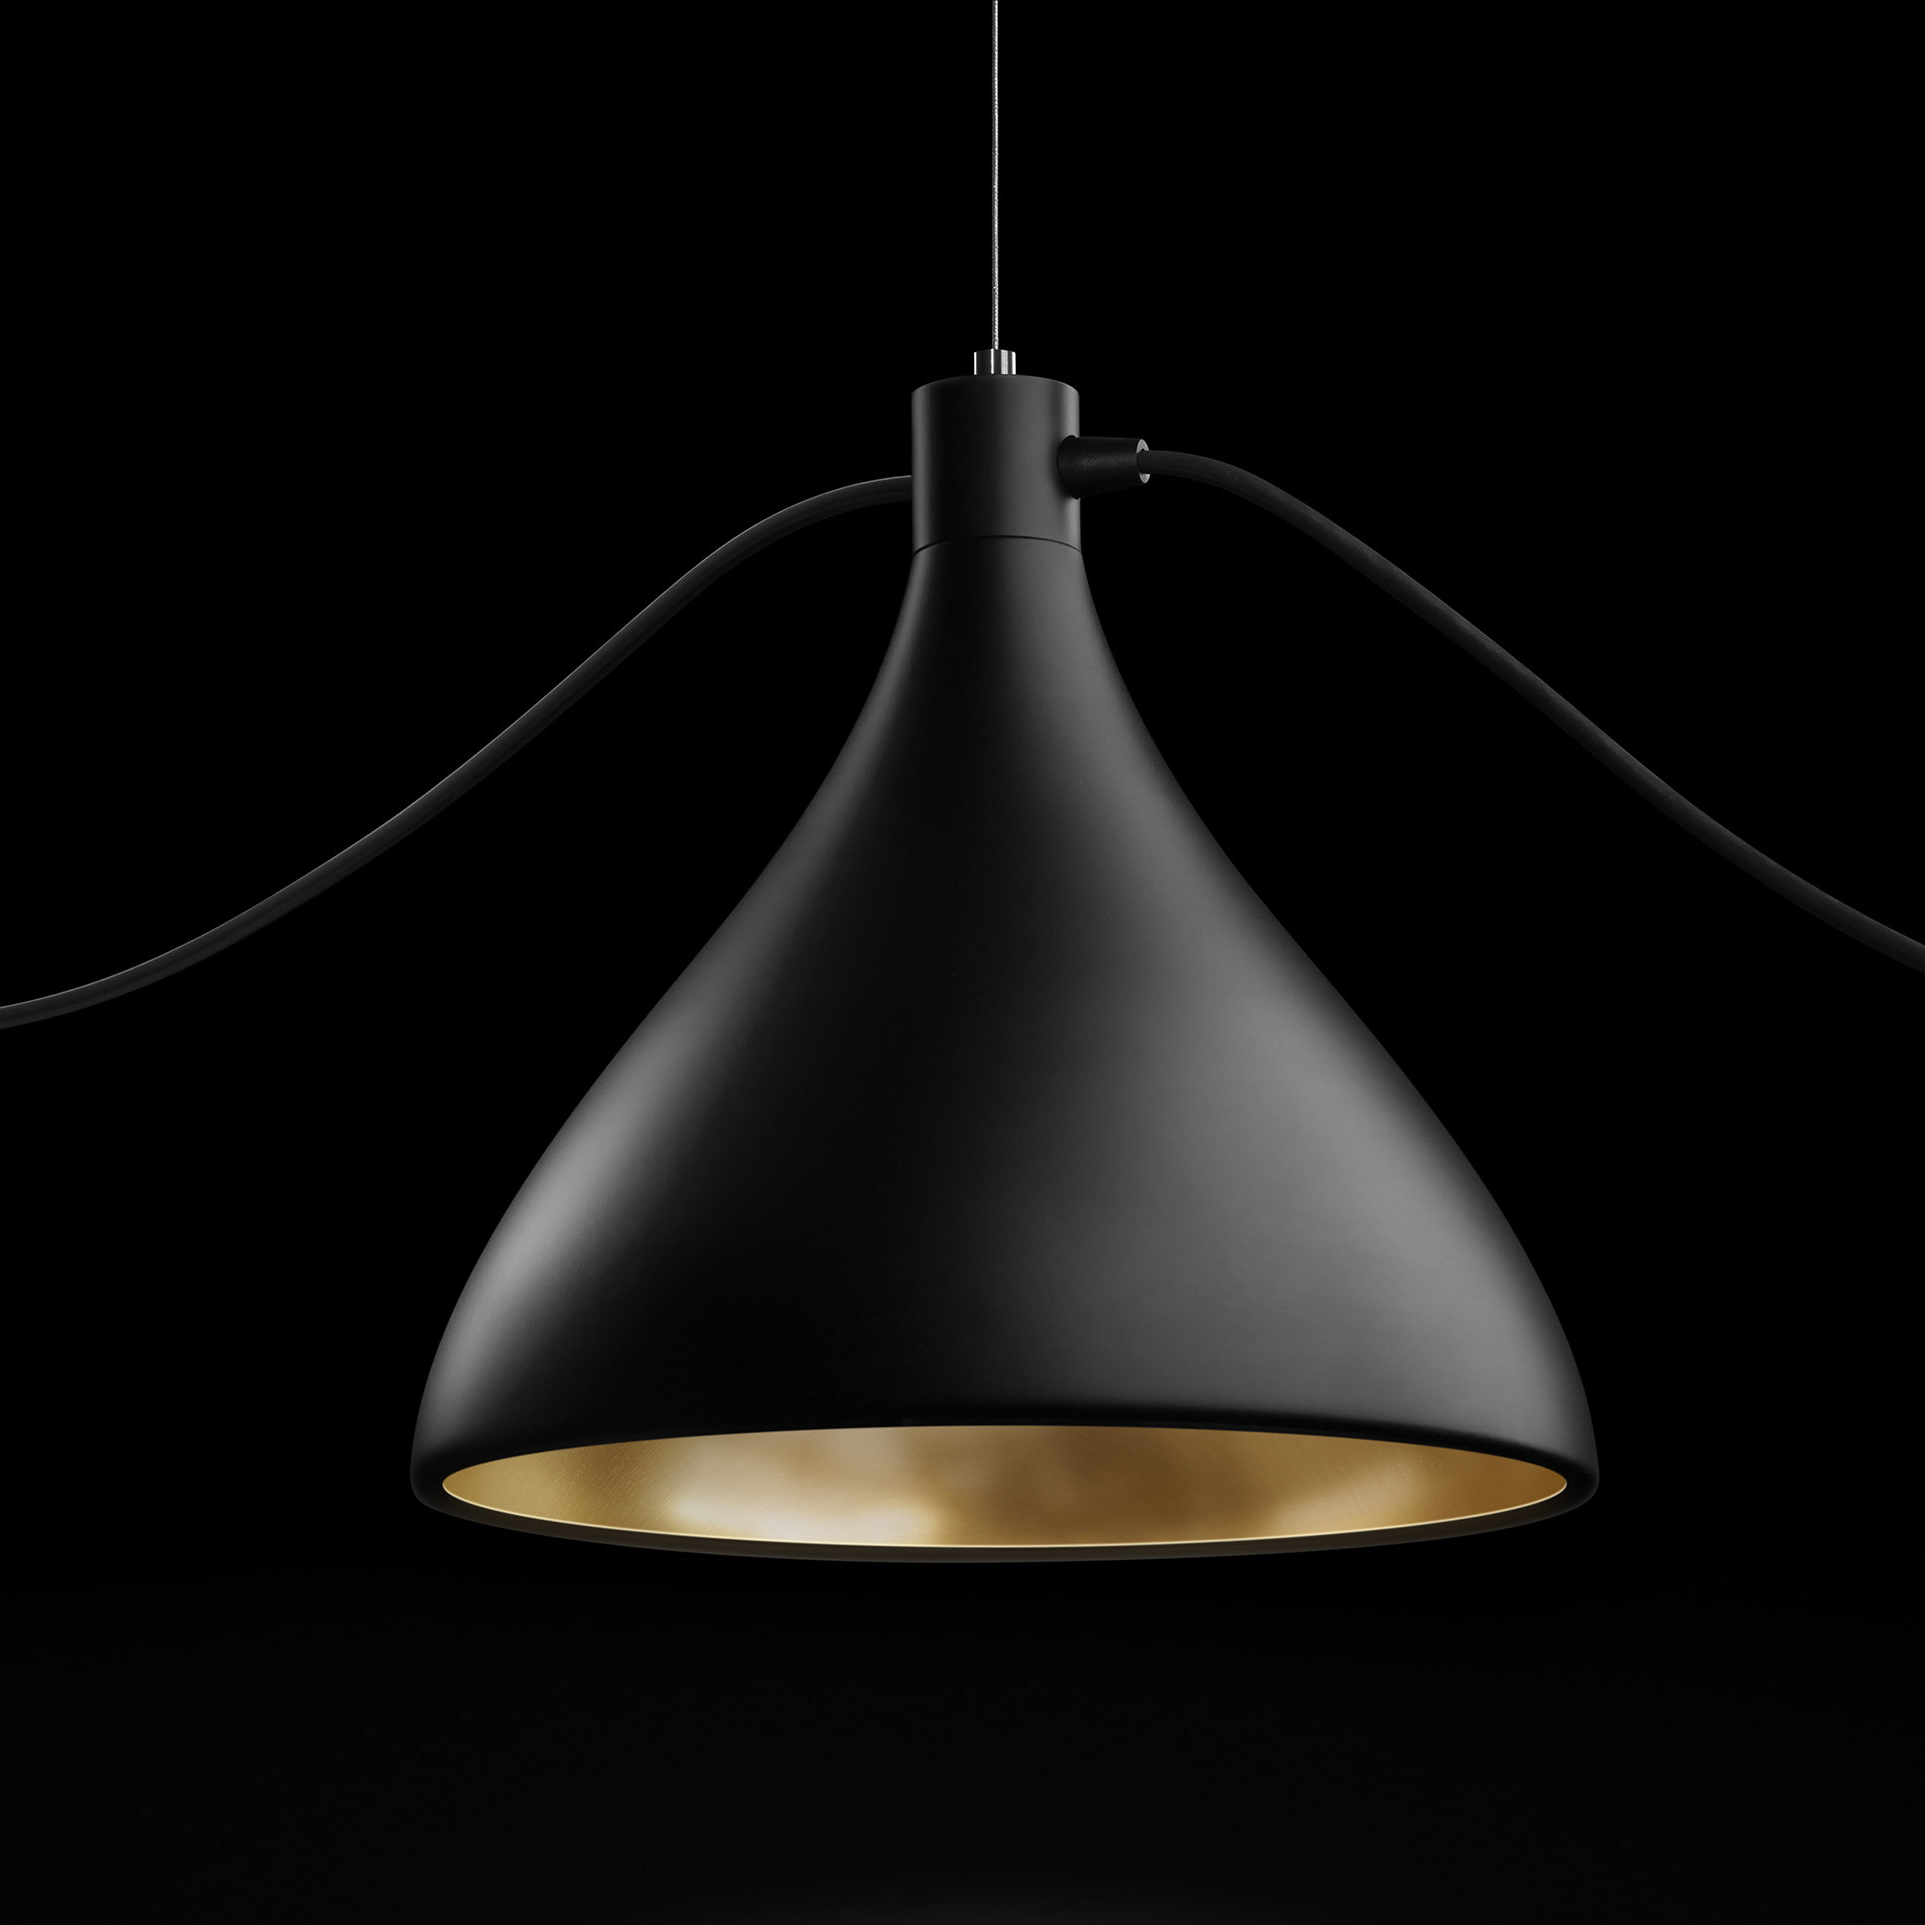 Pablo Designs Swell 1 Light Single Bell Pendant & Reviews With Well Known Ryker 1 Light Single Dome Pendants (View 9 of 20)